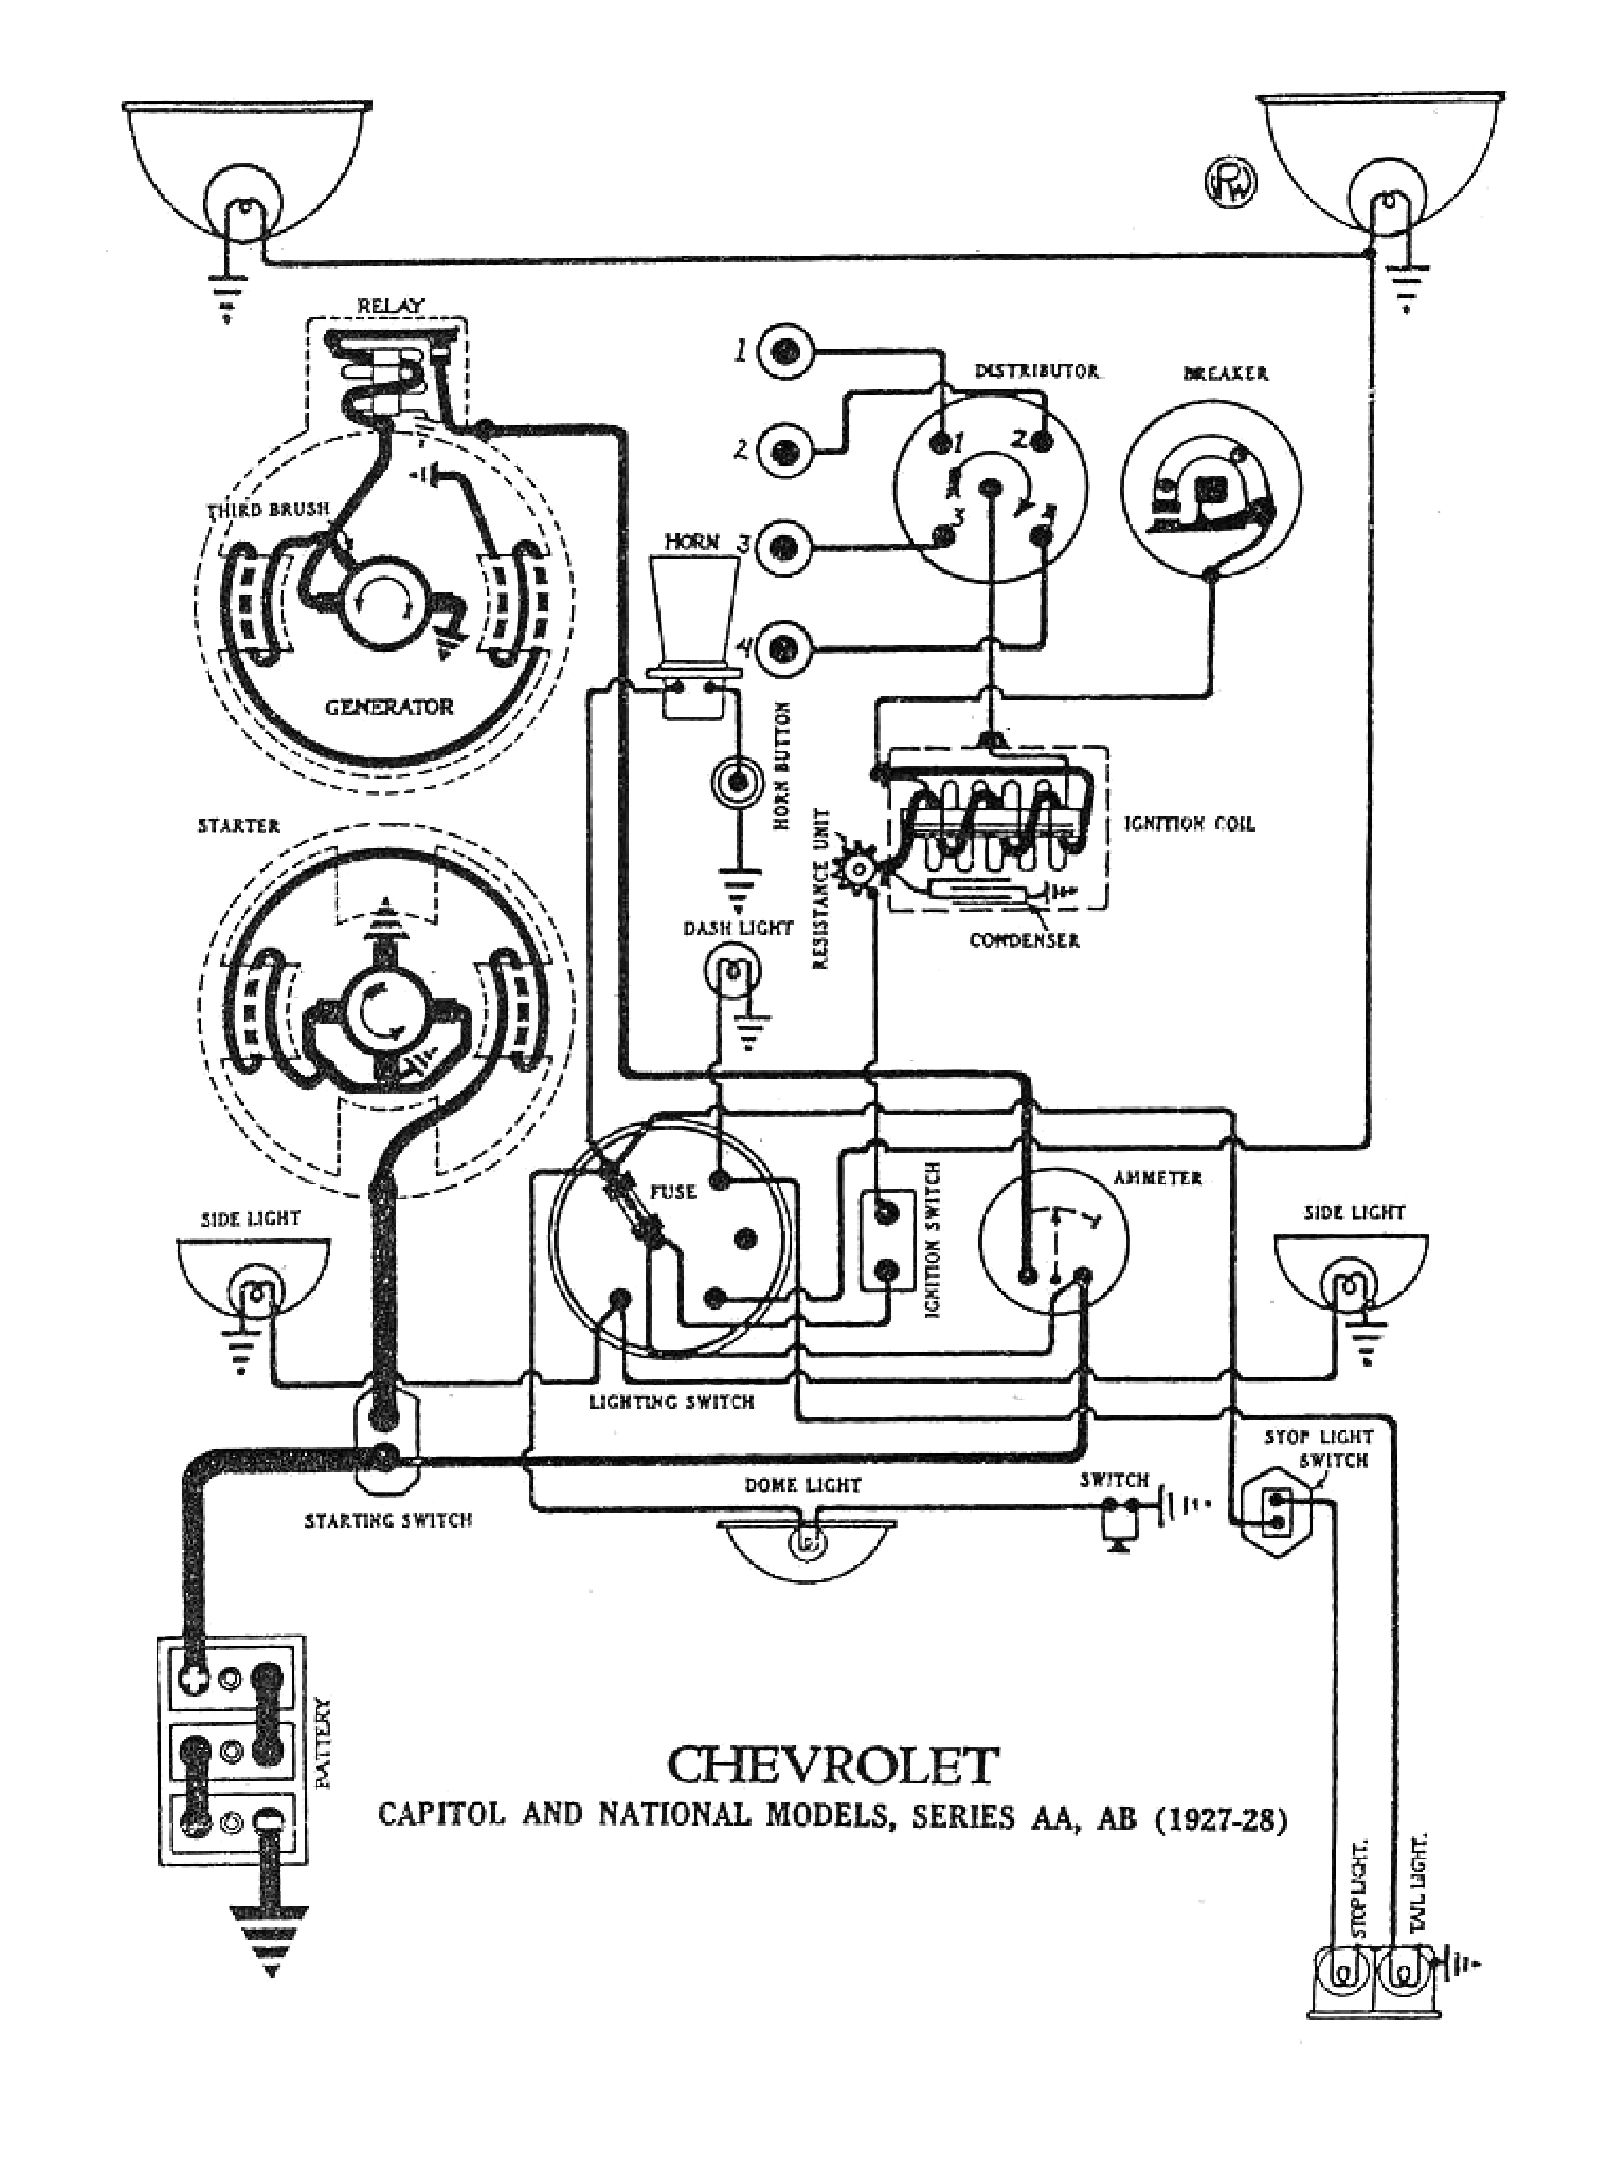 Chevy Wiring Diagrams 1930 Chevy 1.5 Ton Truck 1946 Chevy 1 5 Ton Truck  Wiring Diagram